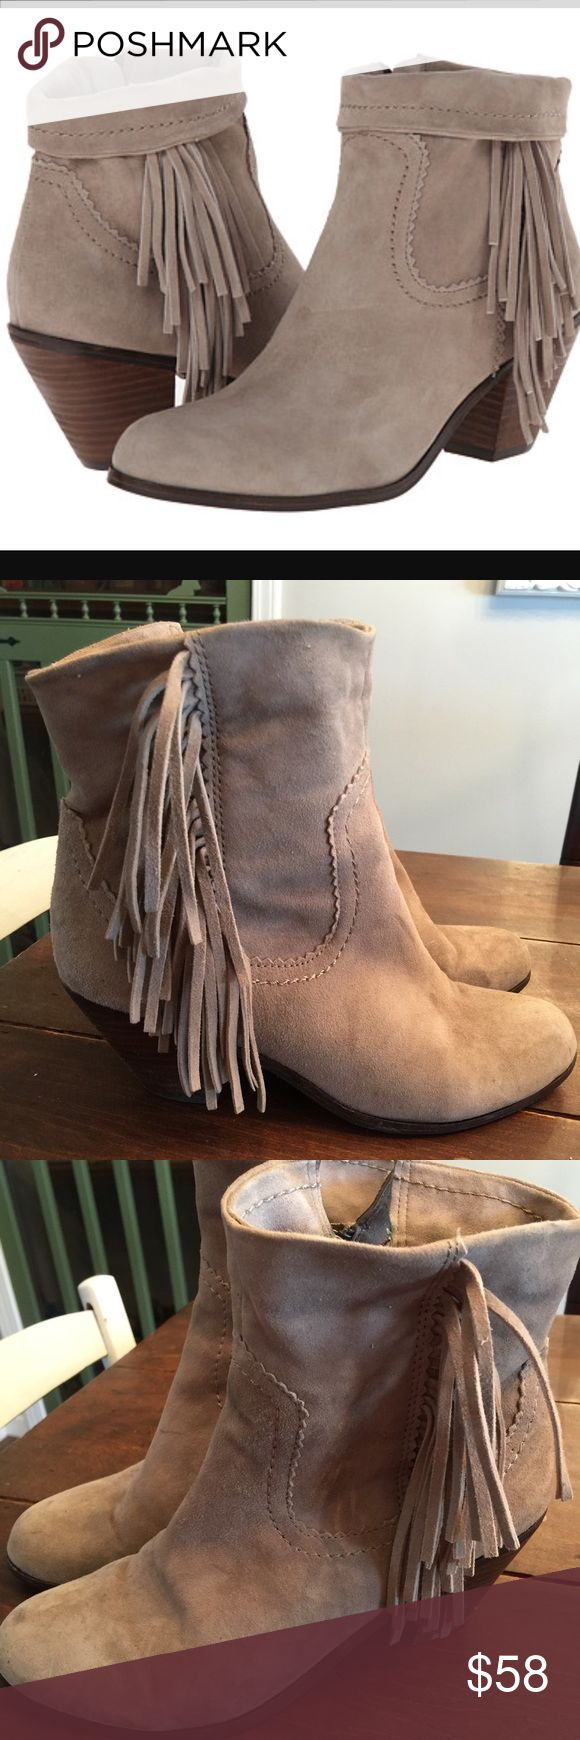 Sam Edelman Suede fringe Louie booties tan putty Sam Edelman Louie booties in putty, Beige. These are very lightly worn, soft Suede. Perfect neutral boot. Size 7.5 Sam Edelman Shoes Ankle Boots & Booties